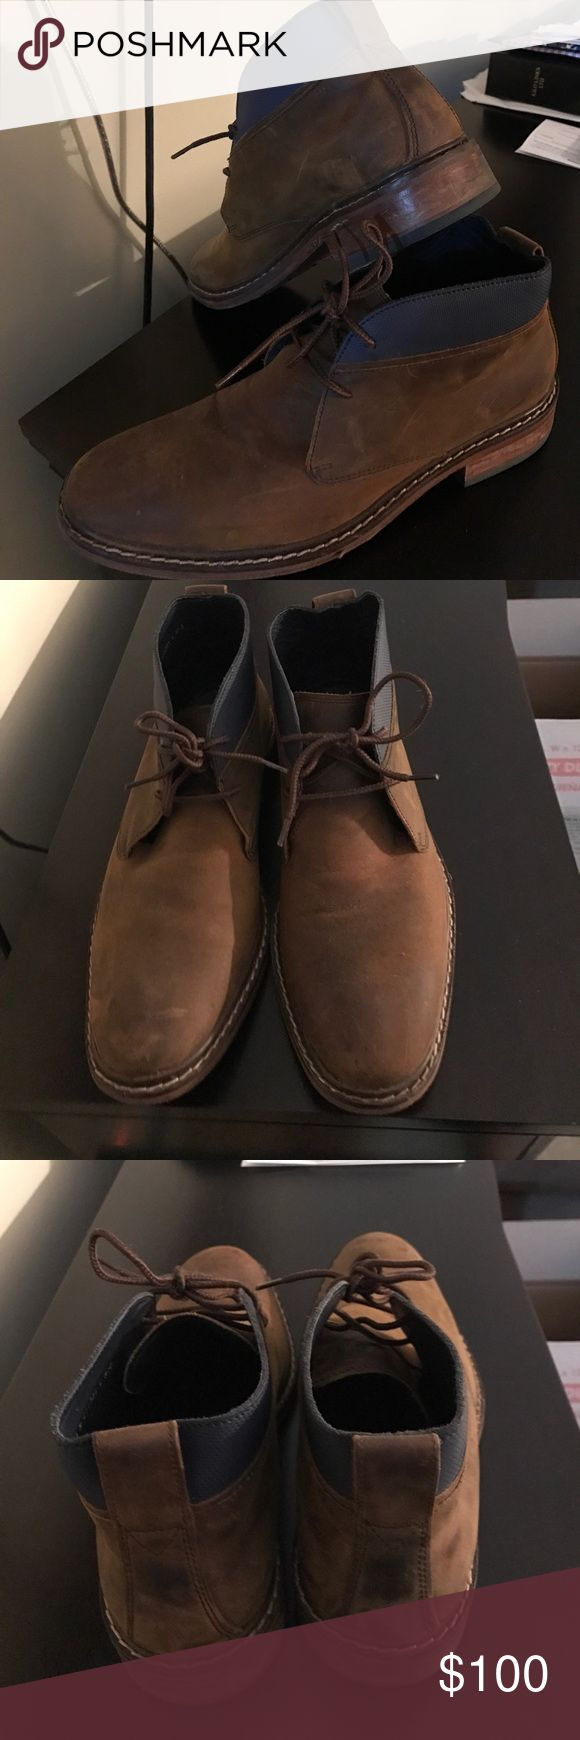 Cole Haan men's boots Very fashionable Cole Haan boots for men. Size 9. Worn 3x max! Great condition. Cole Haan Shoes Boots